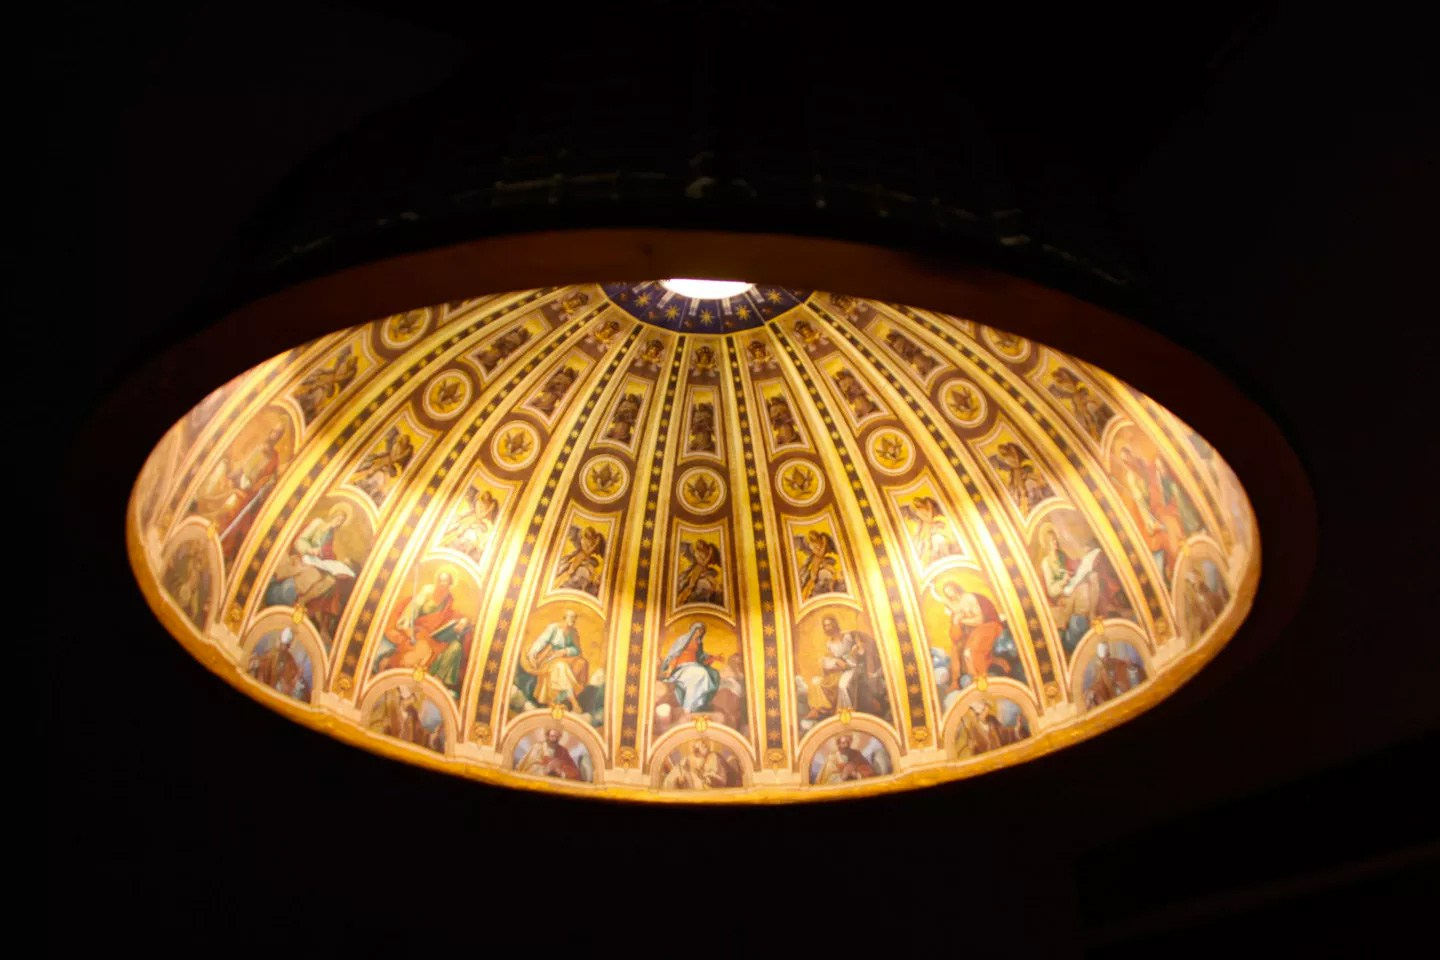 studio-amebe-introduces-cupola-and-light-it-was-3